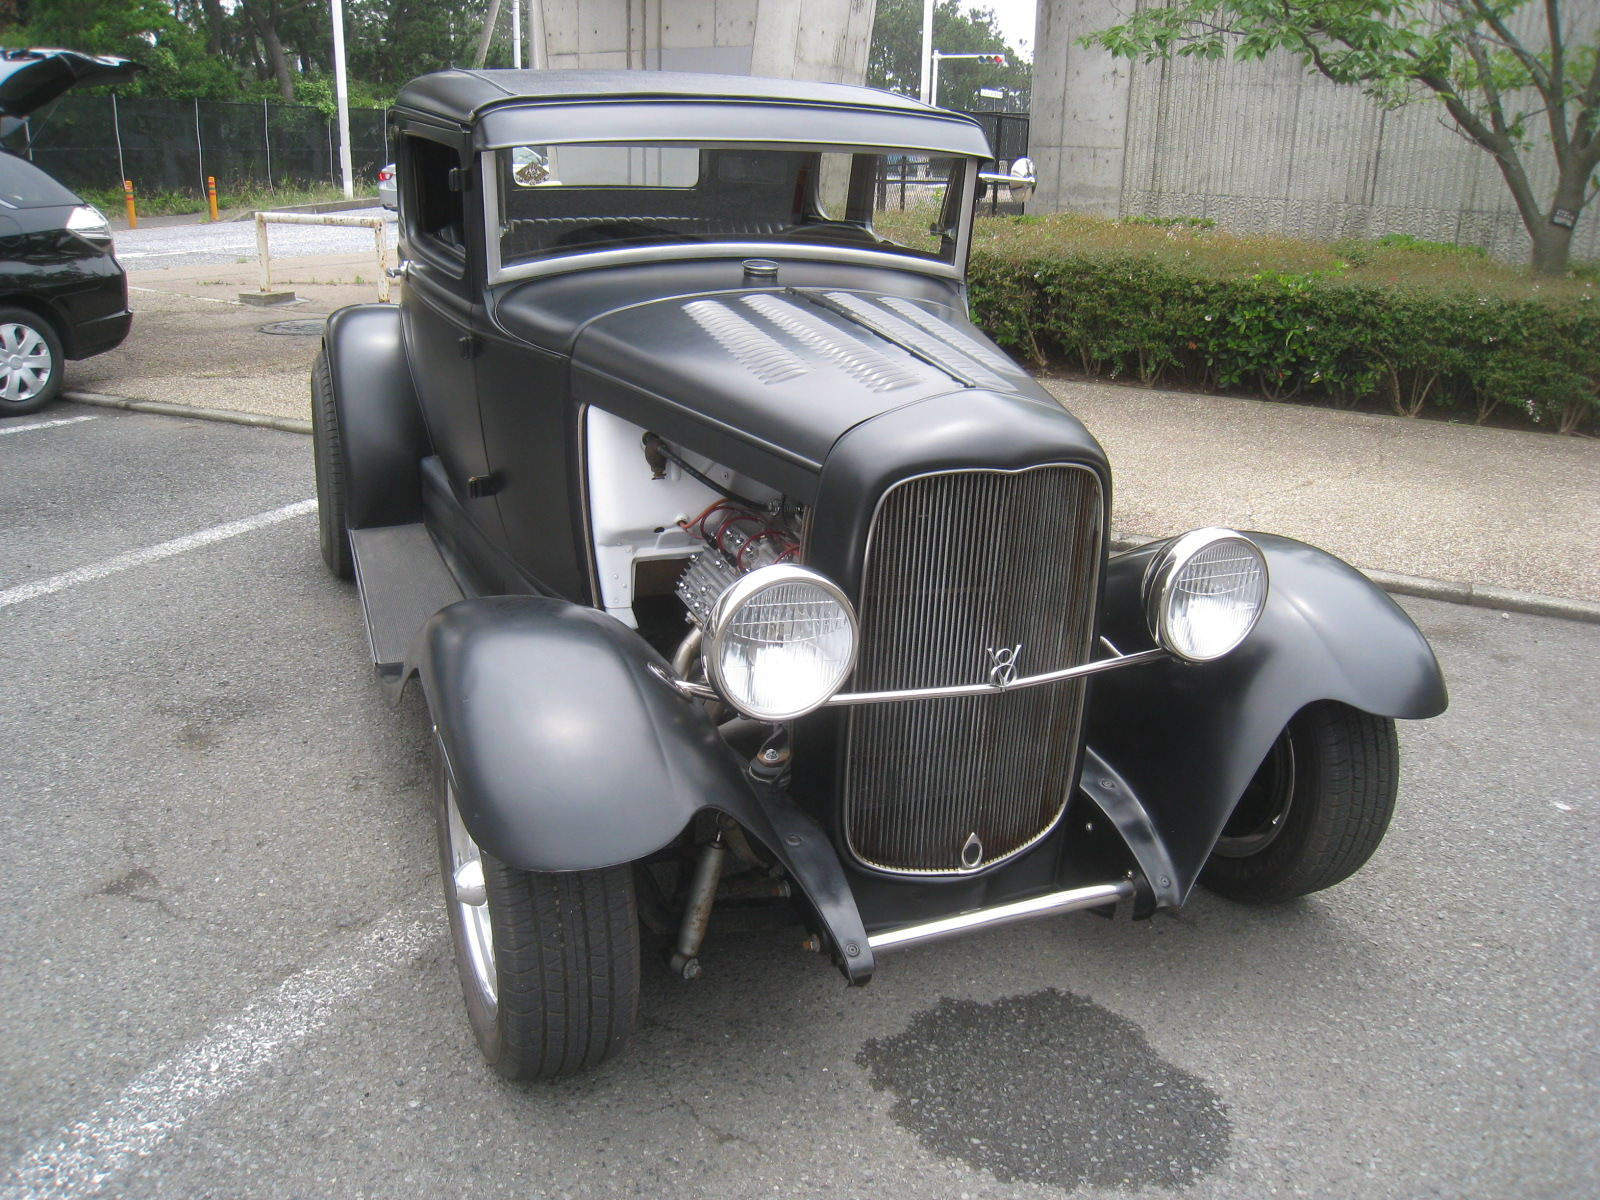 VICTOR HOT ROD SHOP - Car for sale